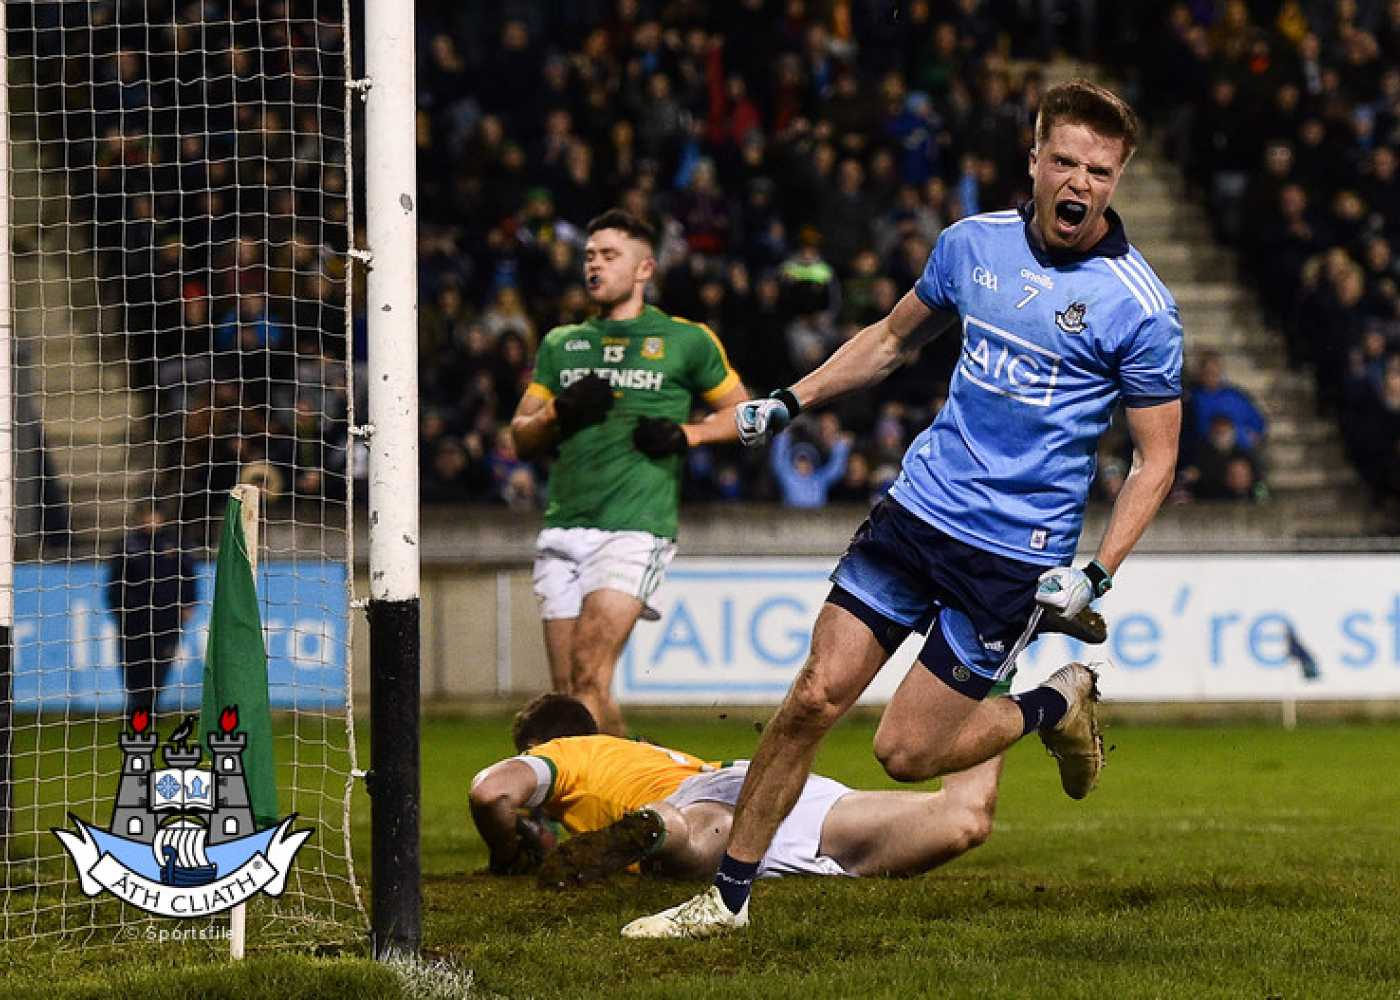 Senior footballers are spot on in victory over Meath